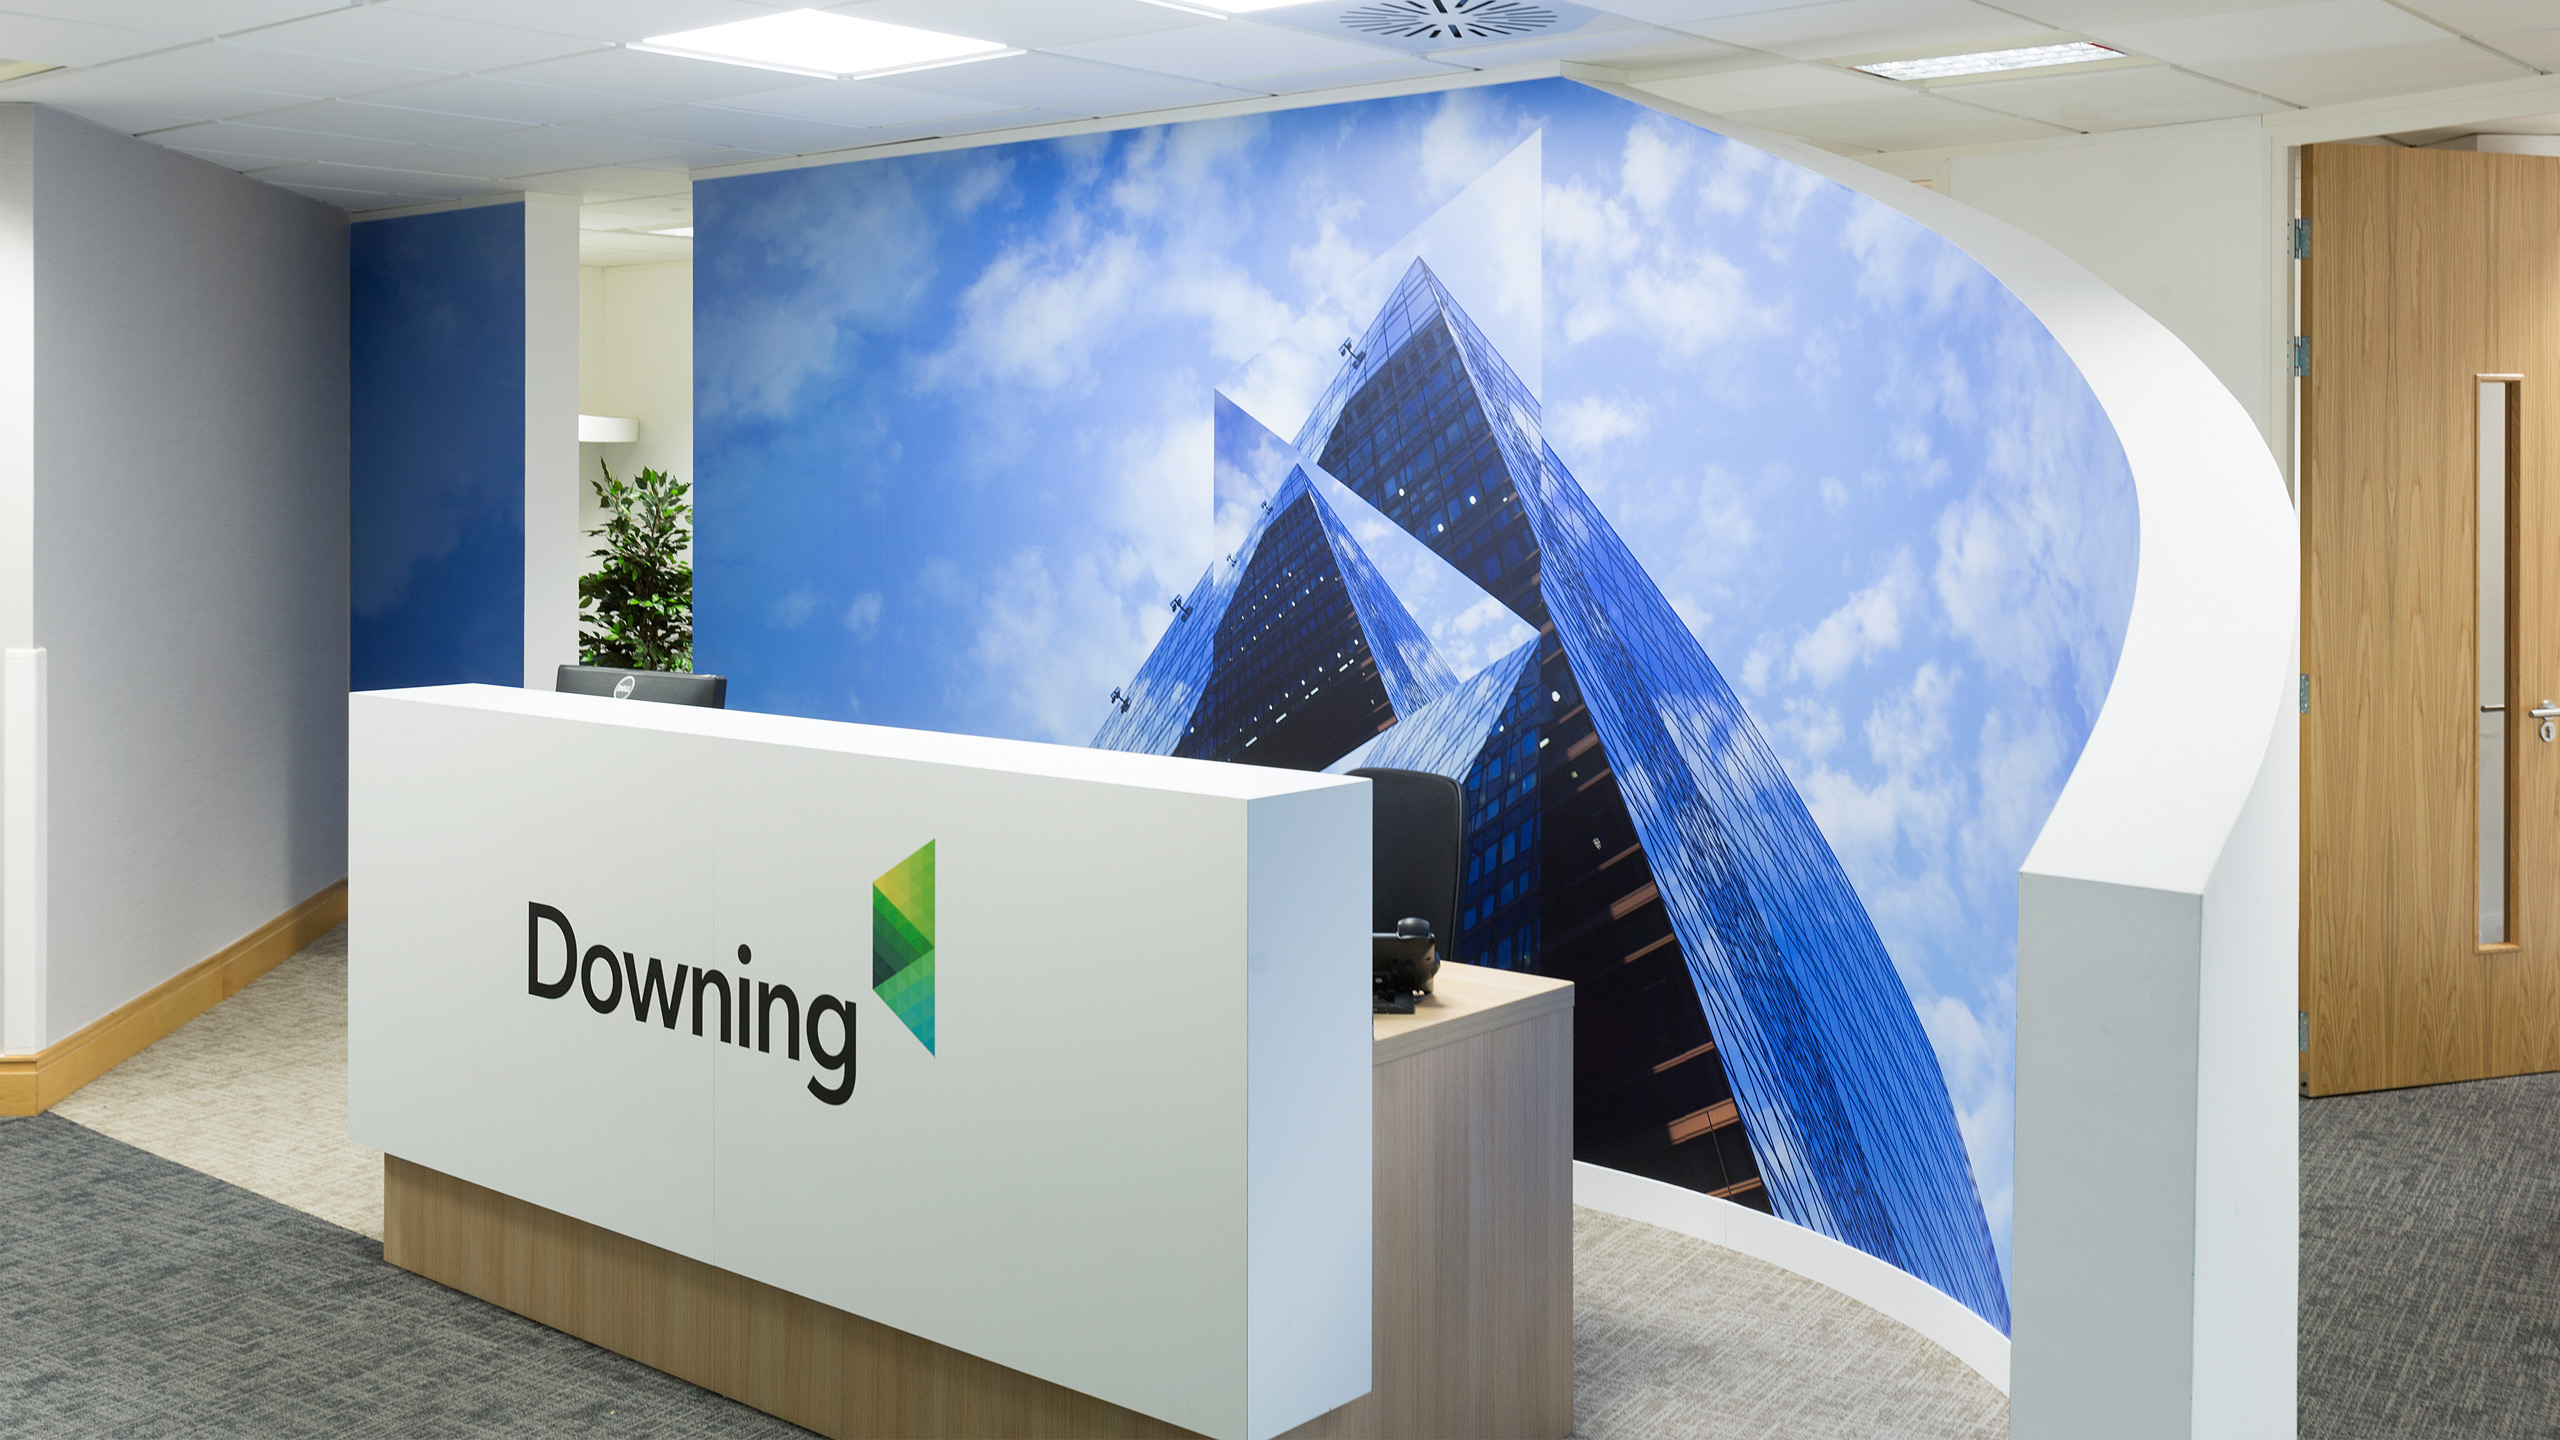 The Graphical Tree Downing office graphics design print and installation